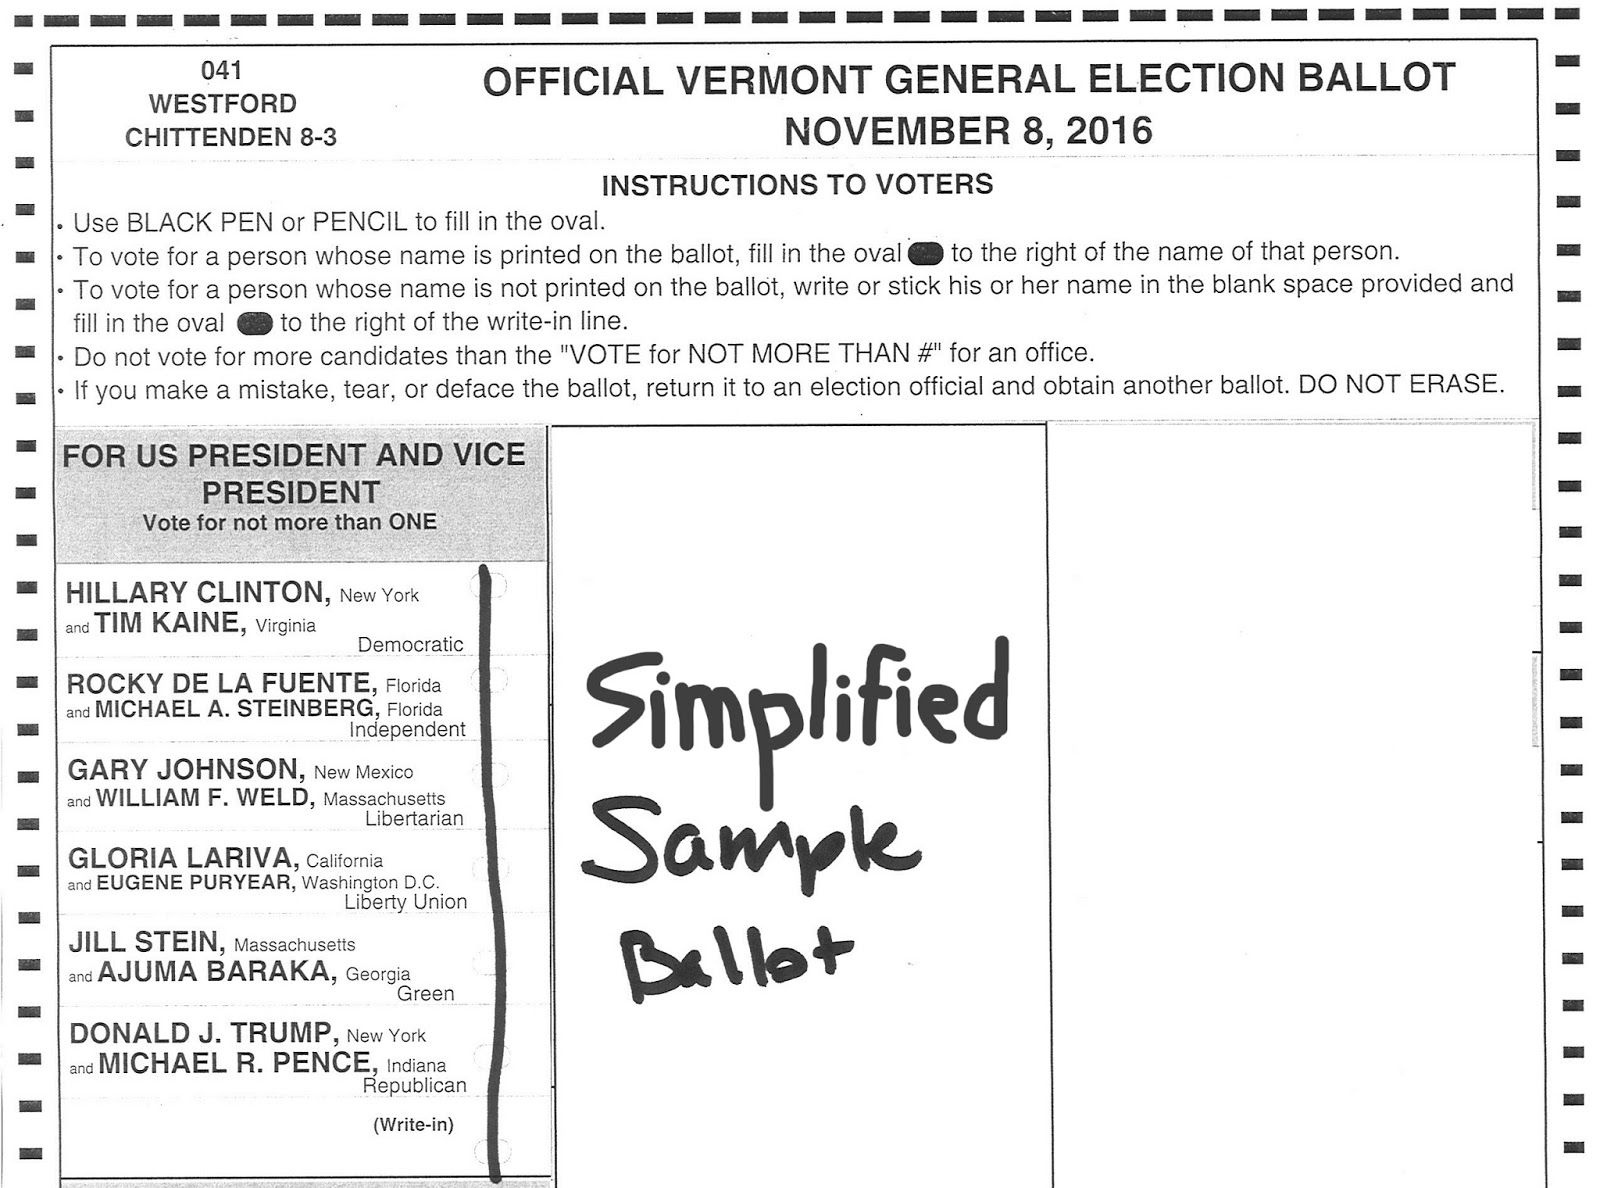 a ballot vote is the piece of paper or electronic document where a registered voter checks a box stating who they want as president and vice president